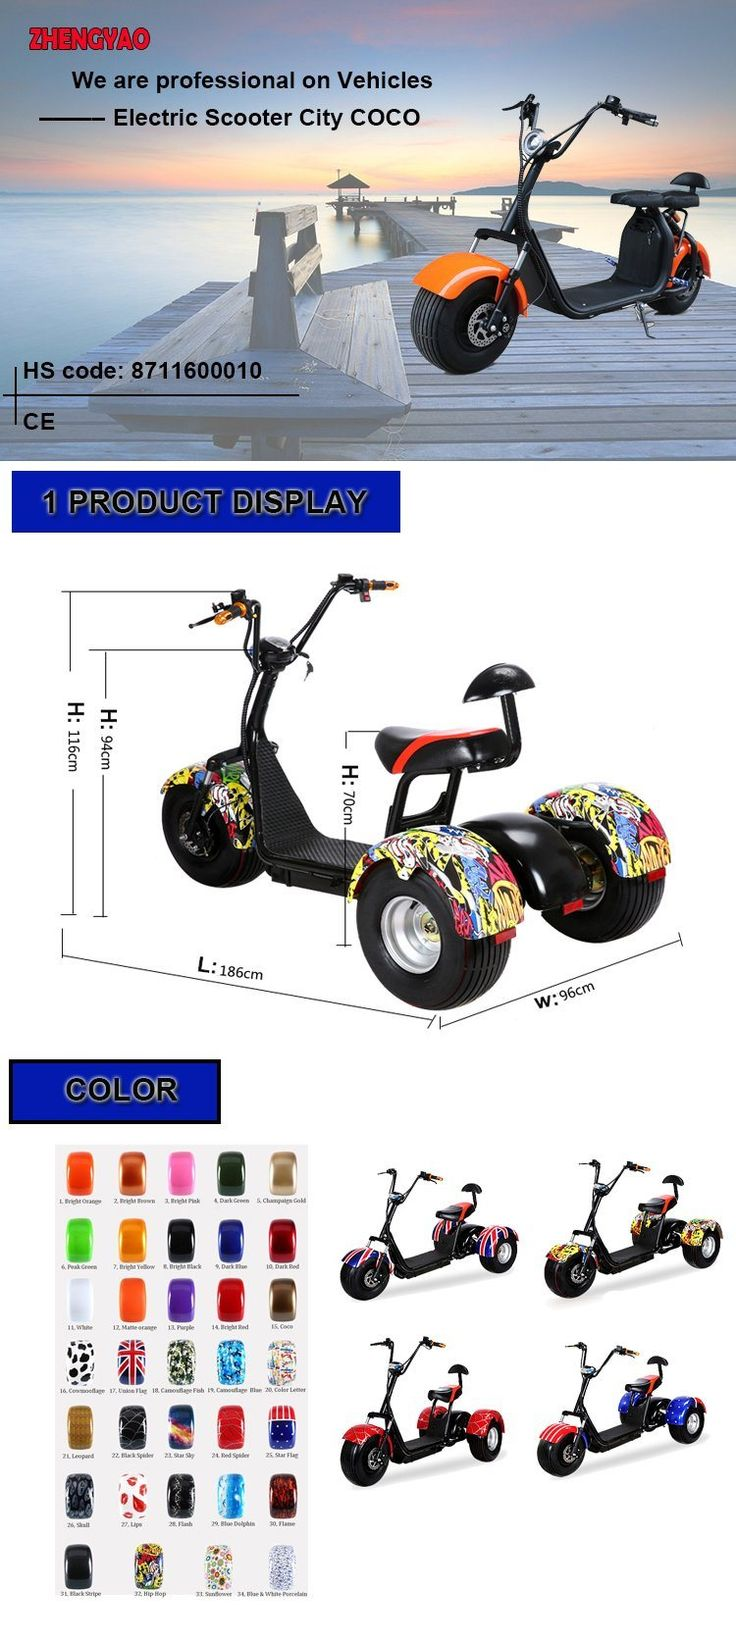 1000W60V Front Back Suspension New Citycoco Harlley Three Wheel Electric Scooter/Cheap Electric Trike /E-Bicycle - China Citycoco, Fat Wheel Electric Scooter | Made-in-China.com Mobile